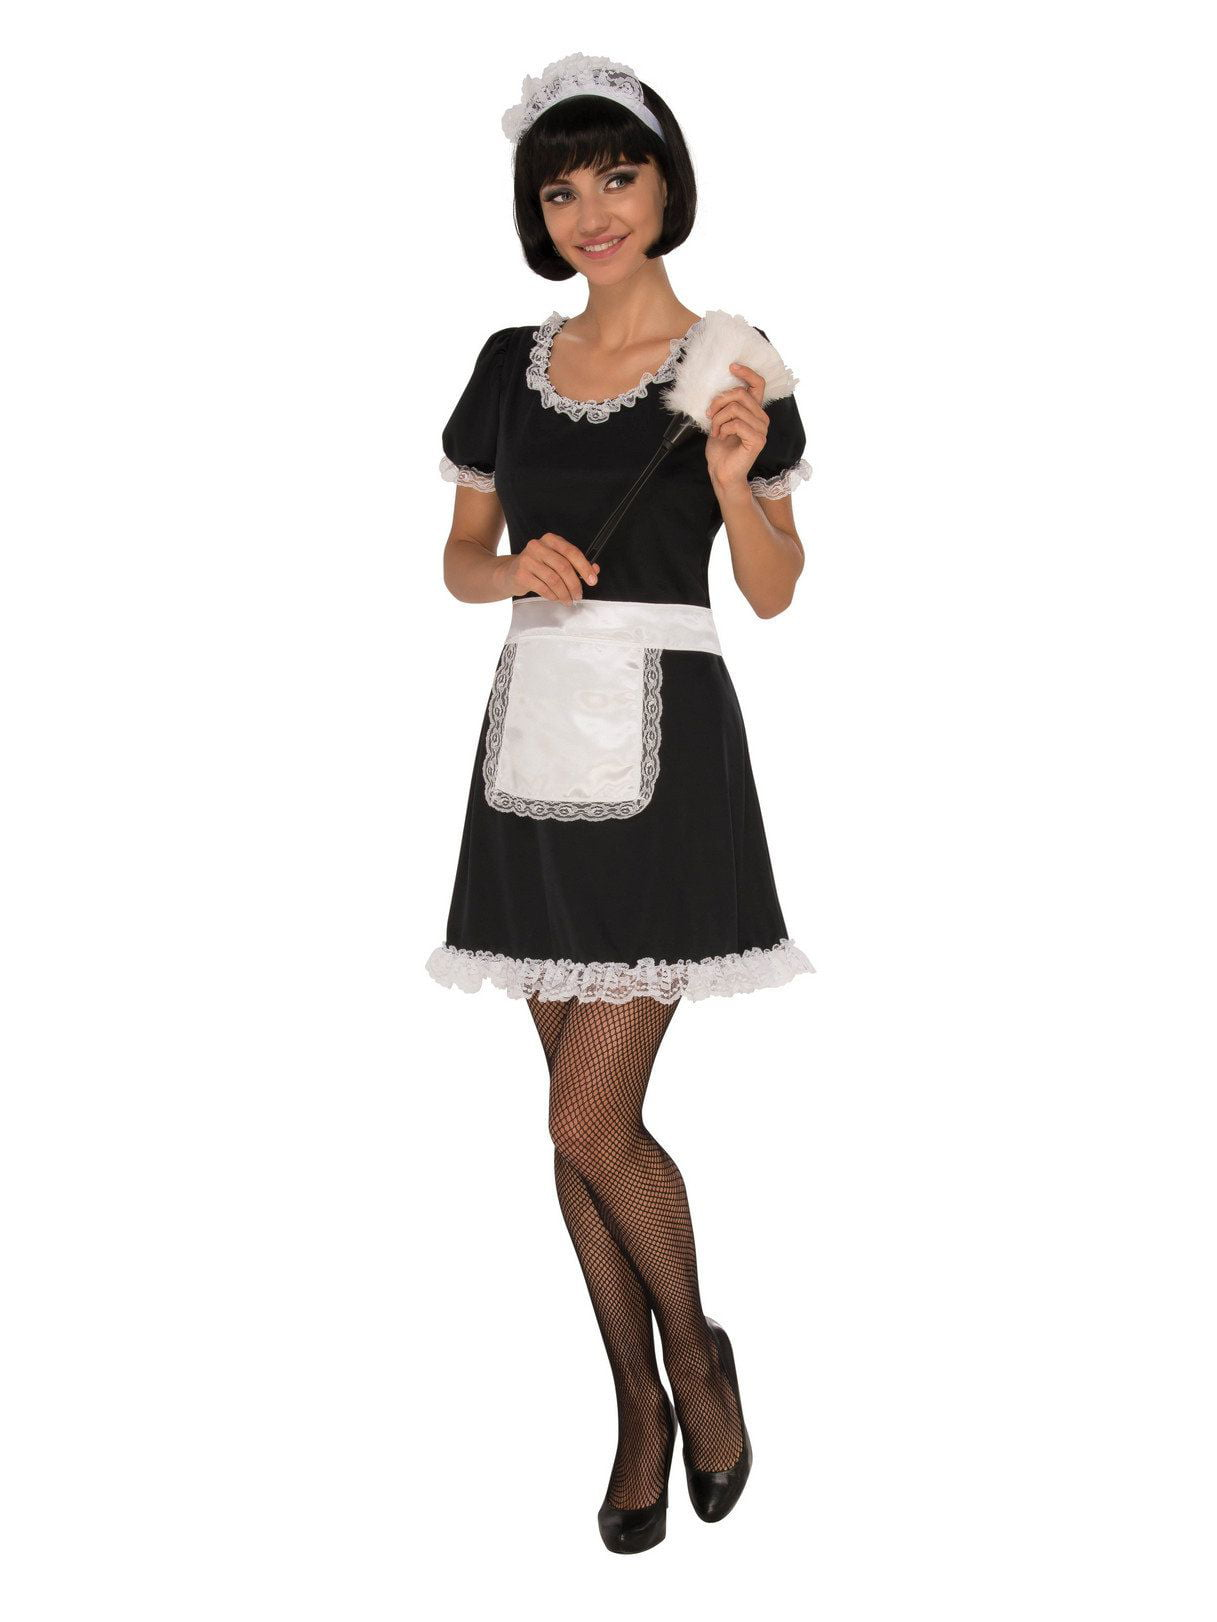 Authentic french maid uniform